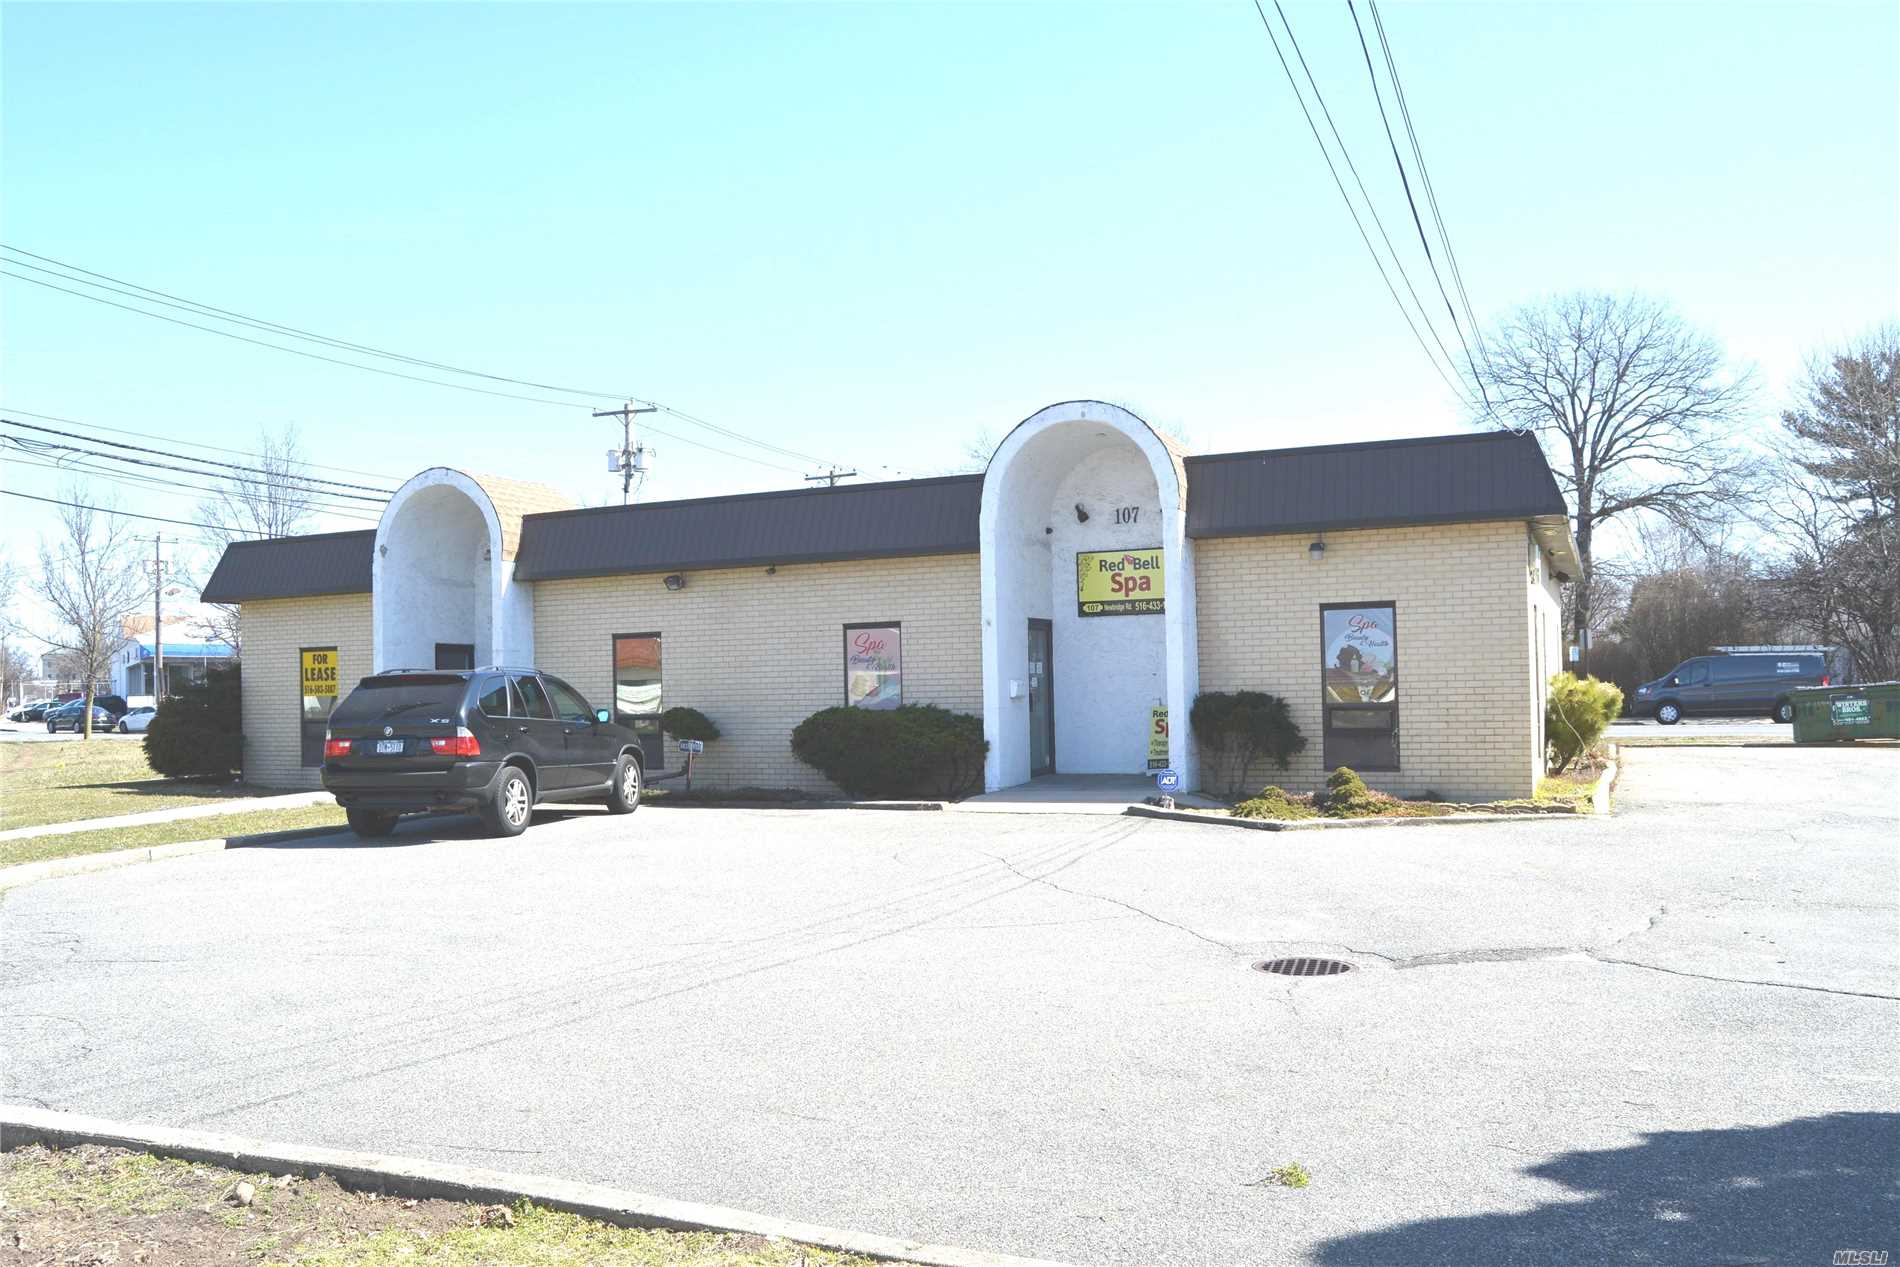 Prime Location Hicksville Prof. / Medical Building, Heavy Traffic Area w/ 3 blocks from Hicksville Station(LIRR), Two Suites Total 2, 818 Sq Ft (1409 Sq Ft Ea). 13 Parking Spaces. Each Separate Entrances, Corner Property Easy To Find. Convenient To All.